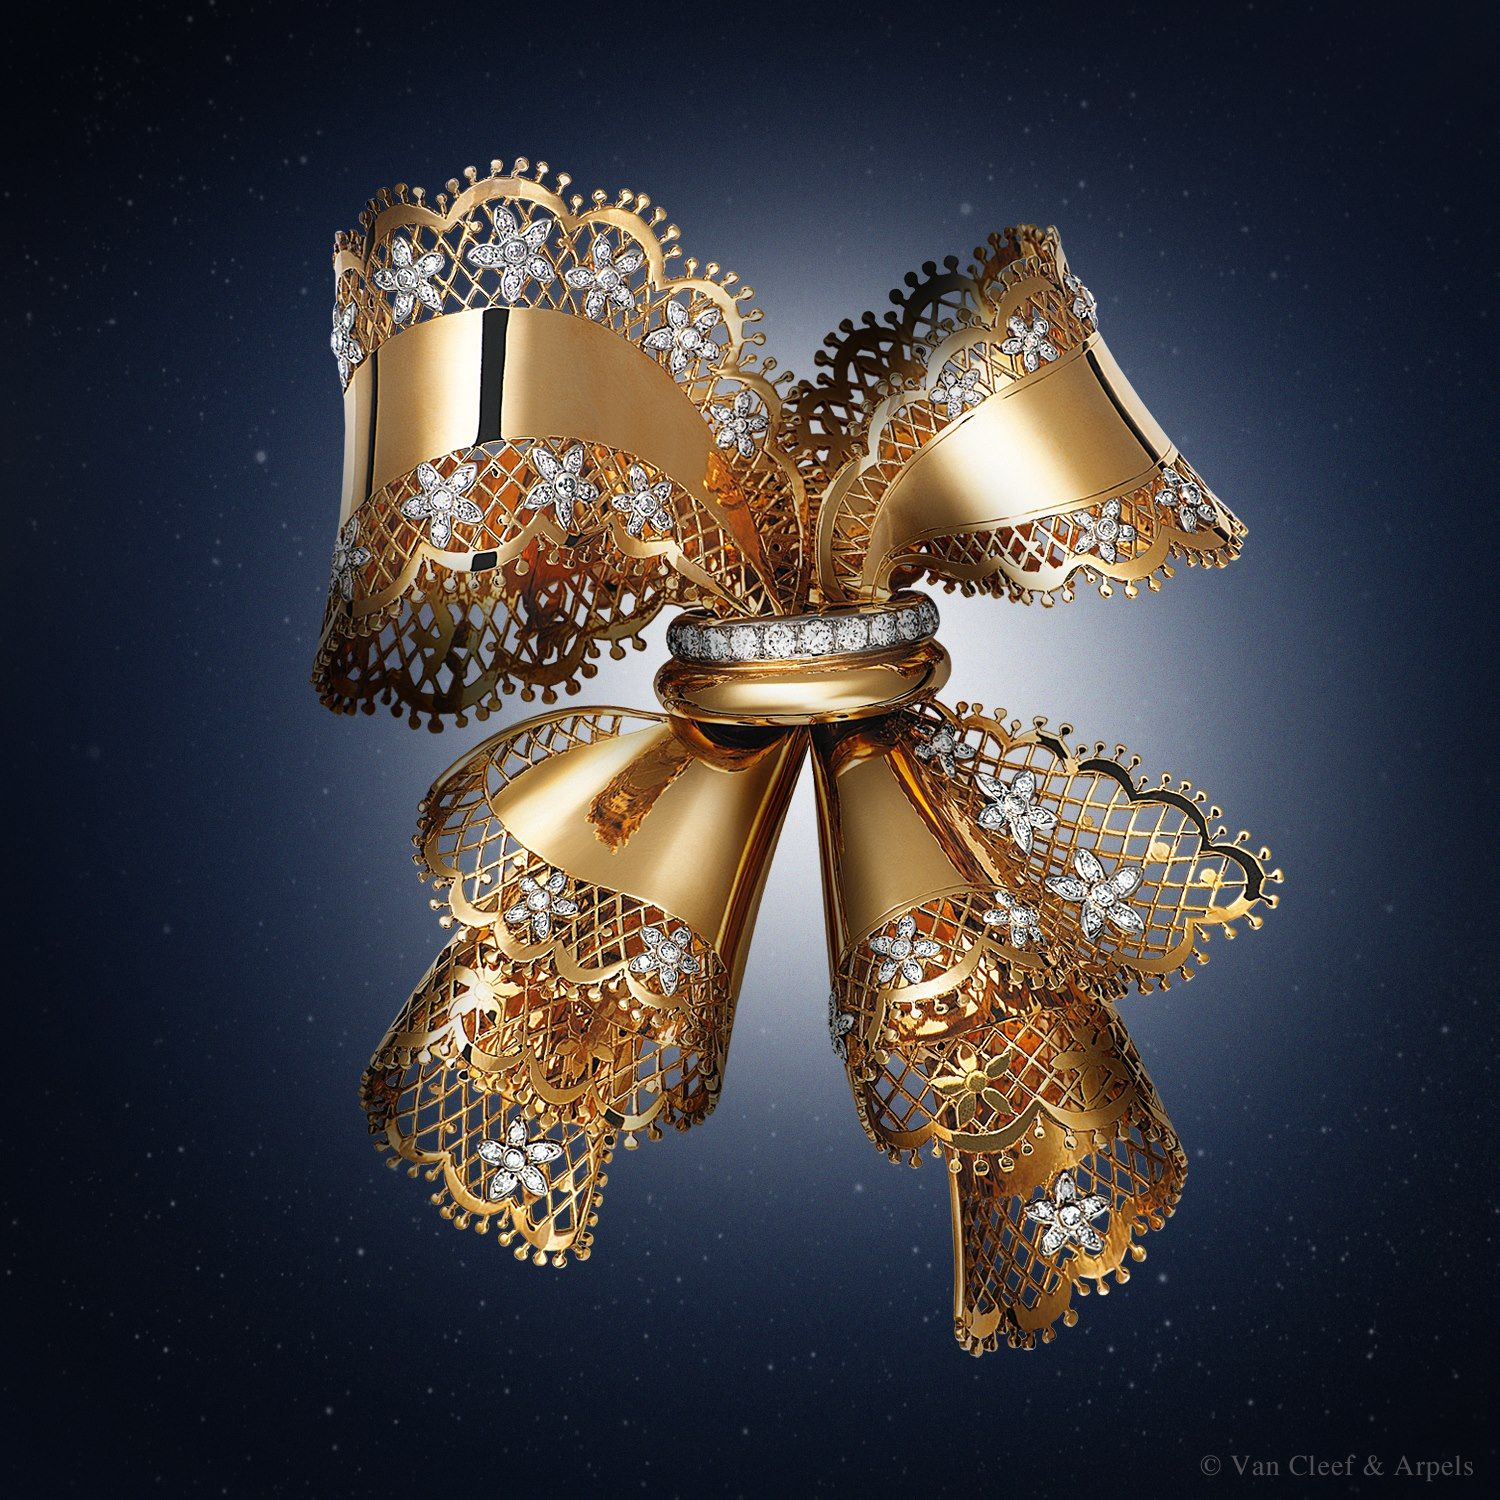 Van Cleef & Arpels - Lace clip created in 1945